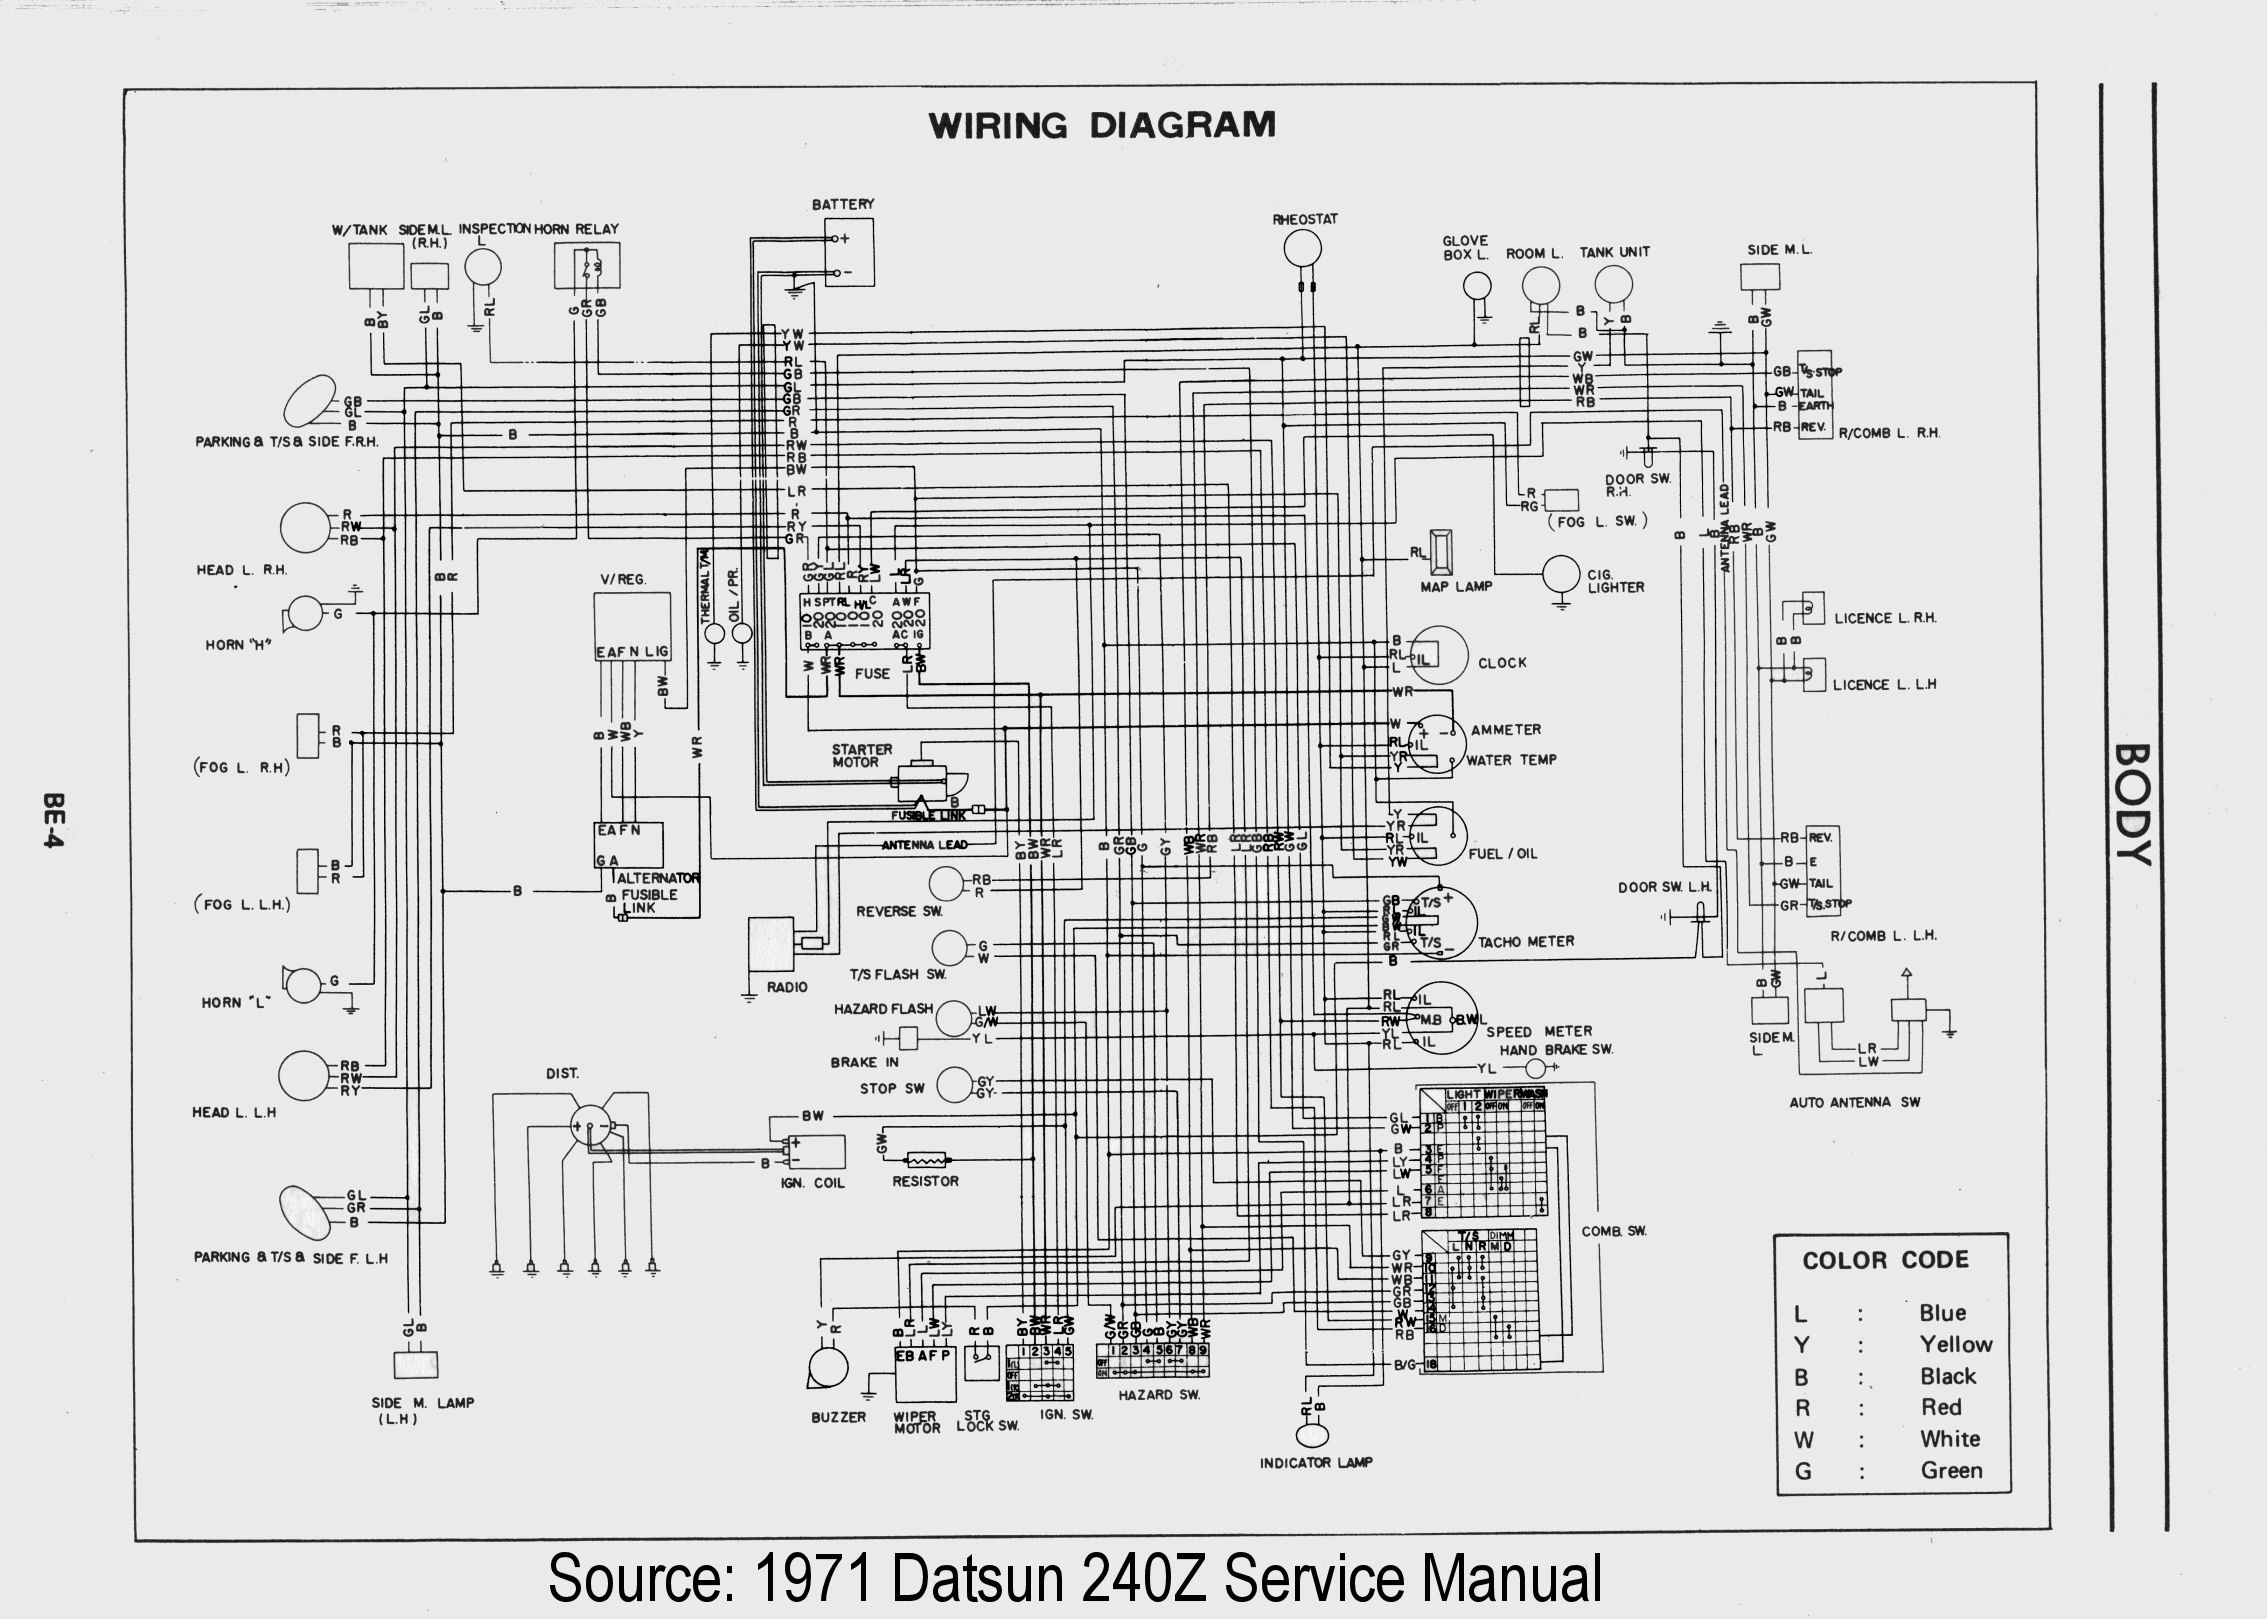 1971 Datsun 240z Wiring Diagram Internal Diagrams 1976 Mg Midget Chassis Generic Troubleshooting Checklist Woodworkerb Triumph Tr6